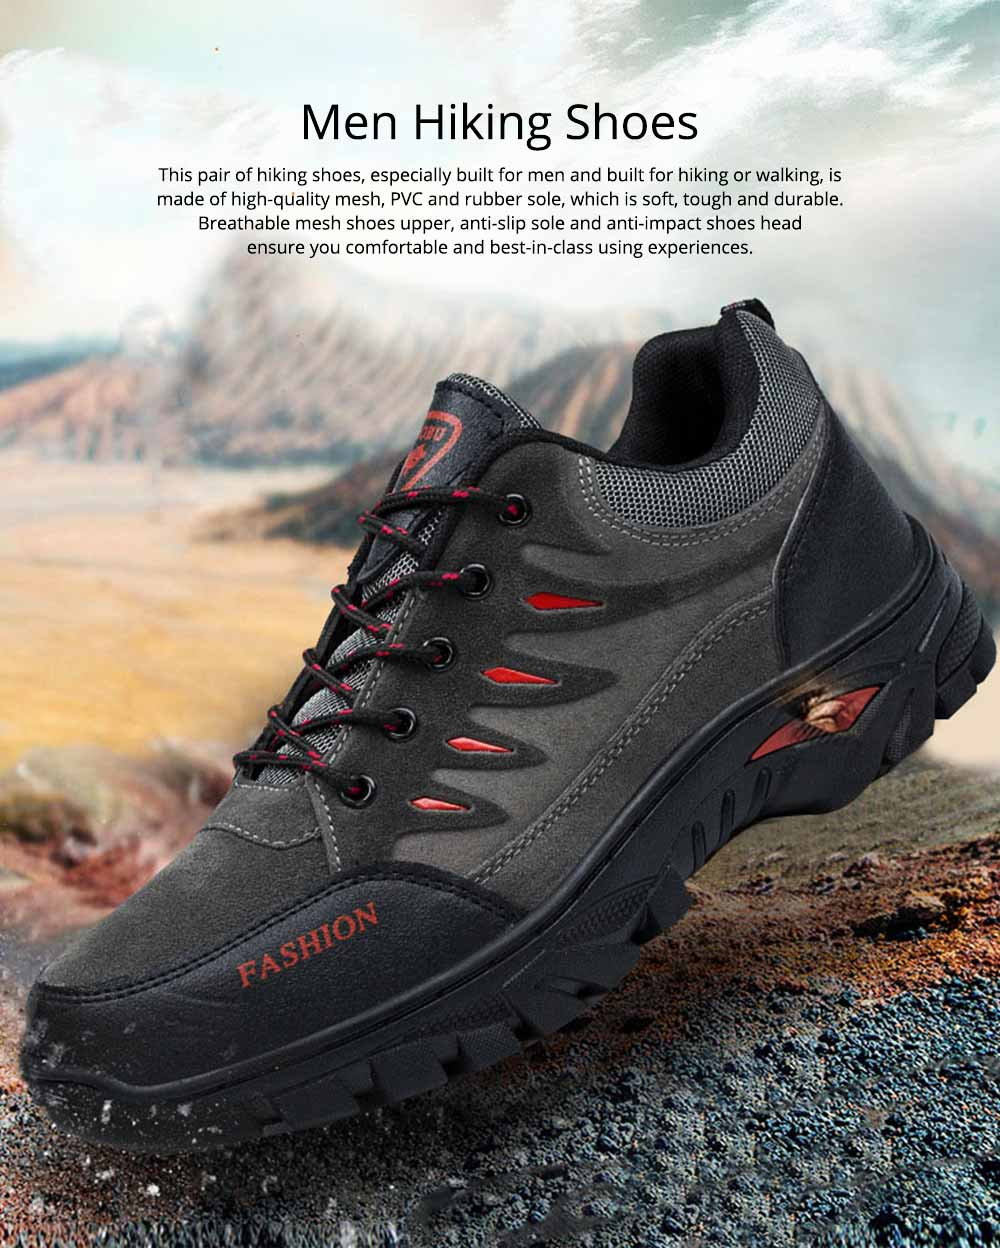 Outdoors Casual Traveling Men Hiking Shoes, Wearable Anti-slip Walking Trekking Sneakers for Men 0